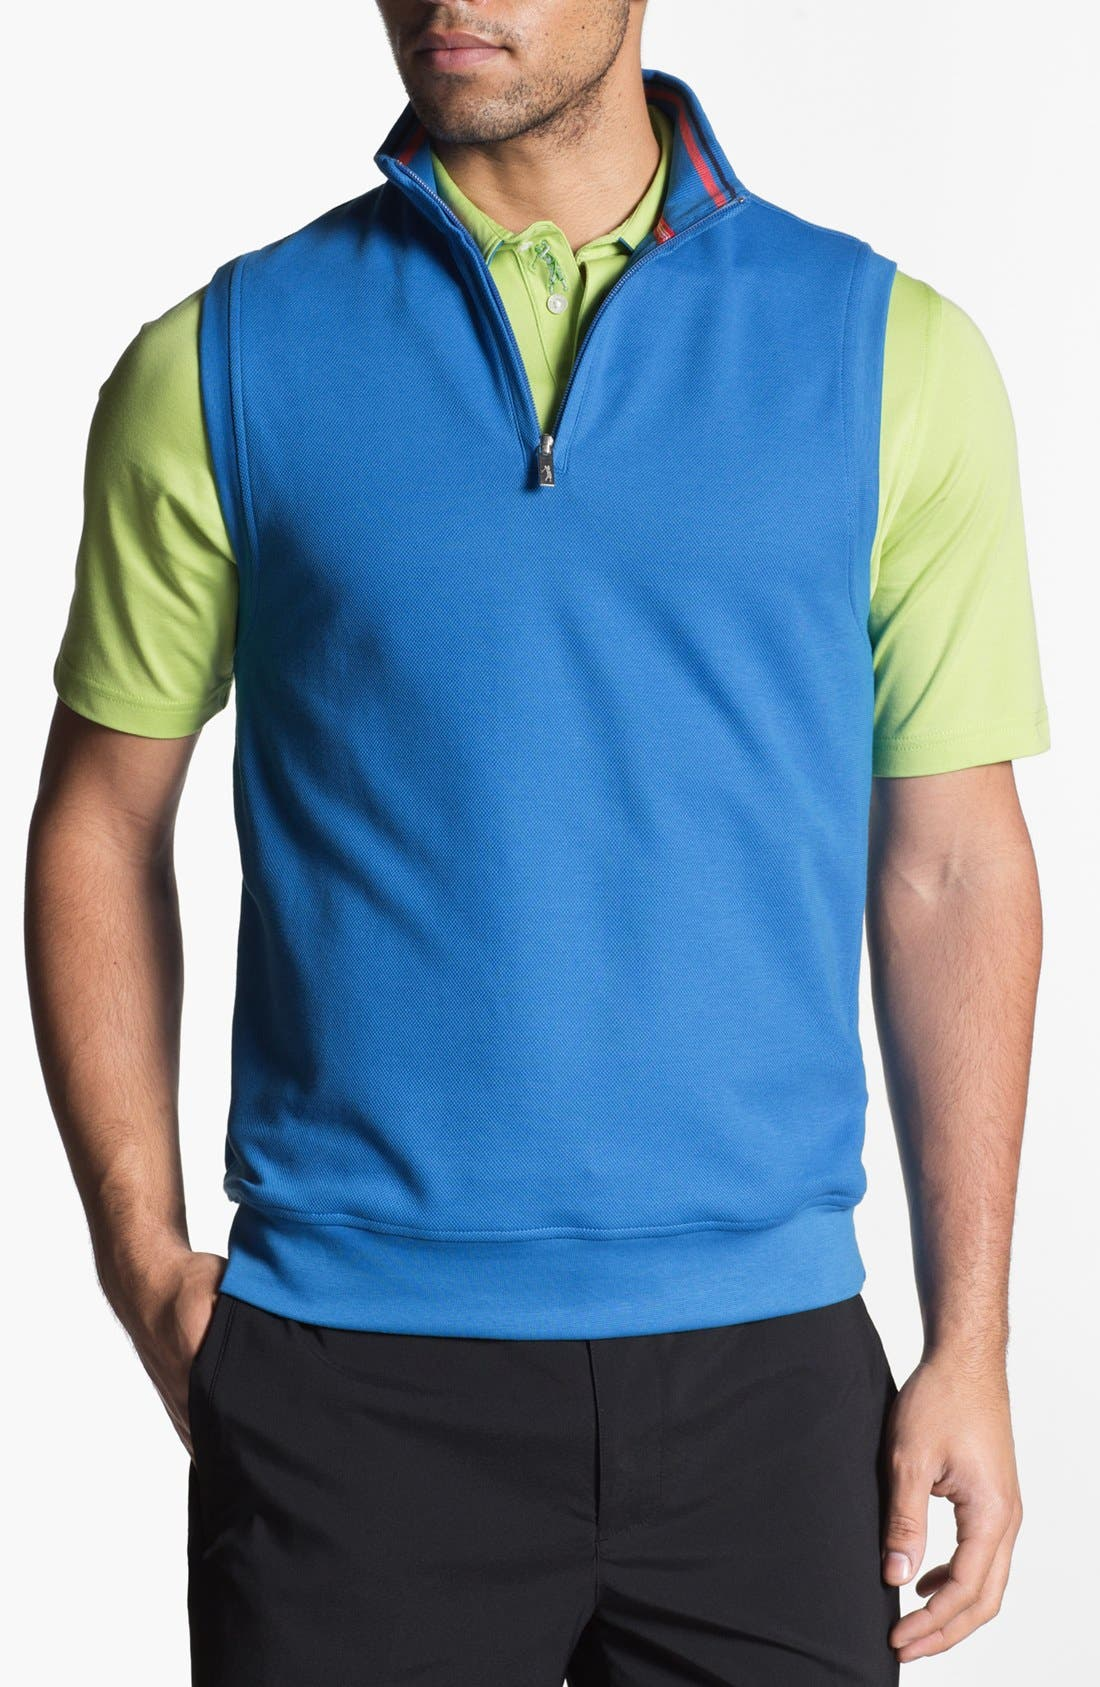 Alternate Image 1 Selected - Bobby Jones Quarter Zip Piqué Vest